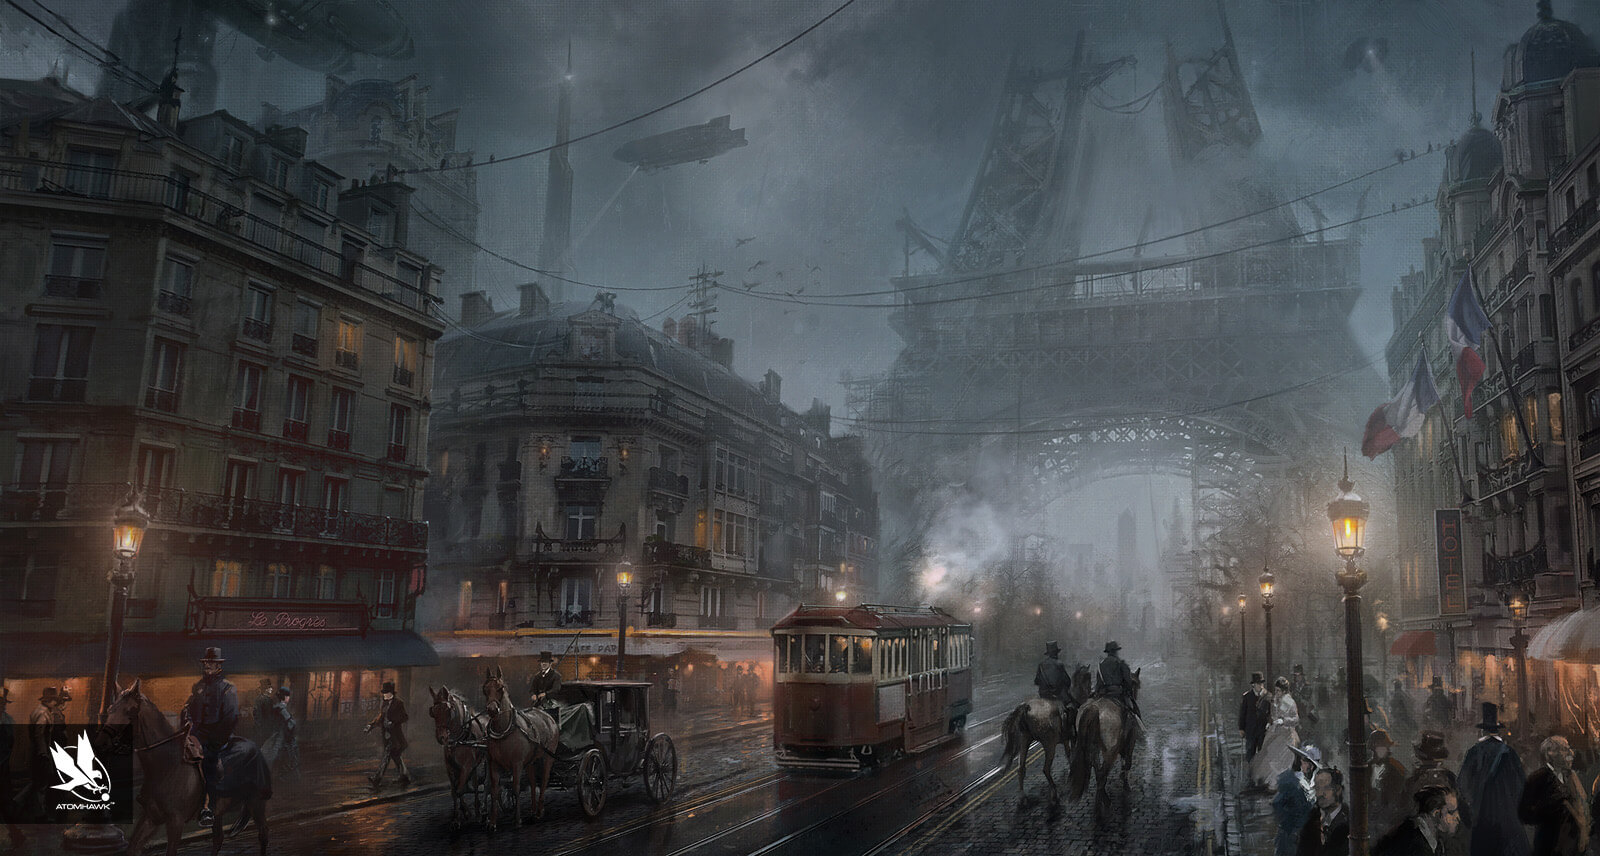 Atomhawk_Sony_The-Order-1866_Marketing-Art_Paris.jpg